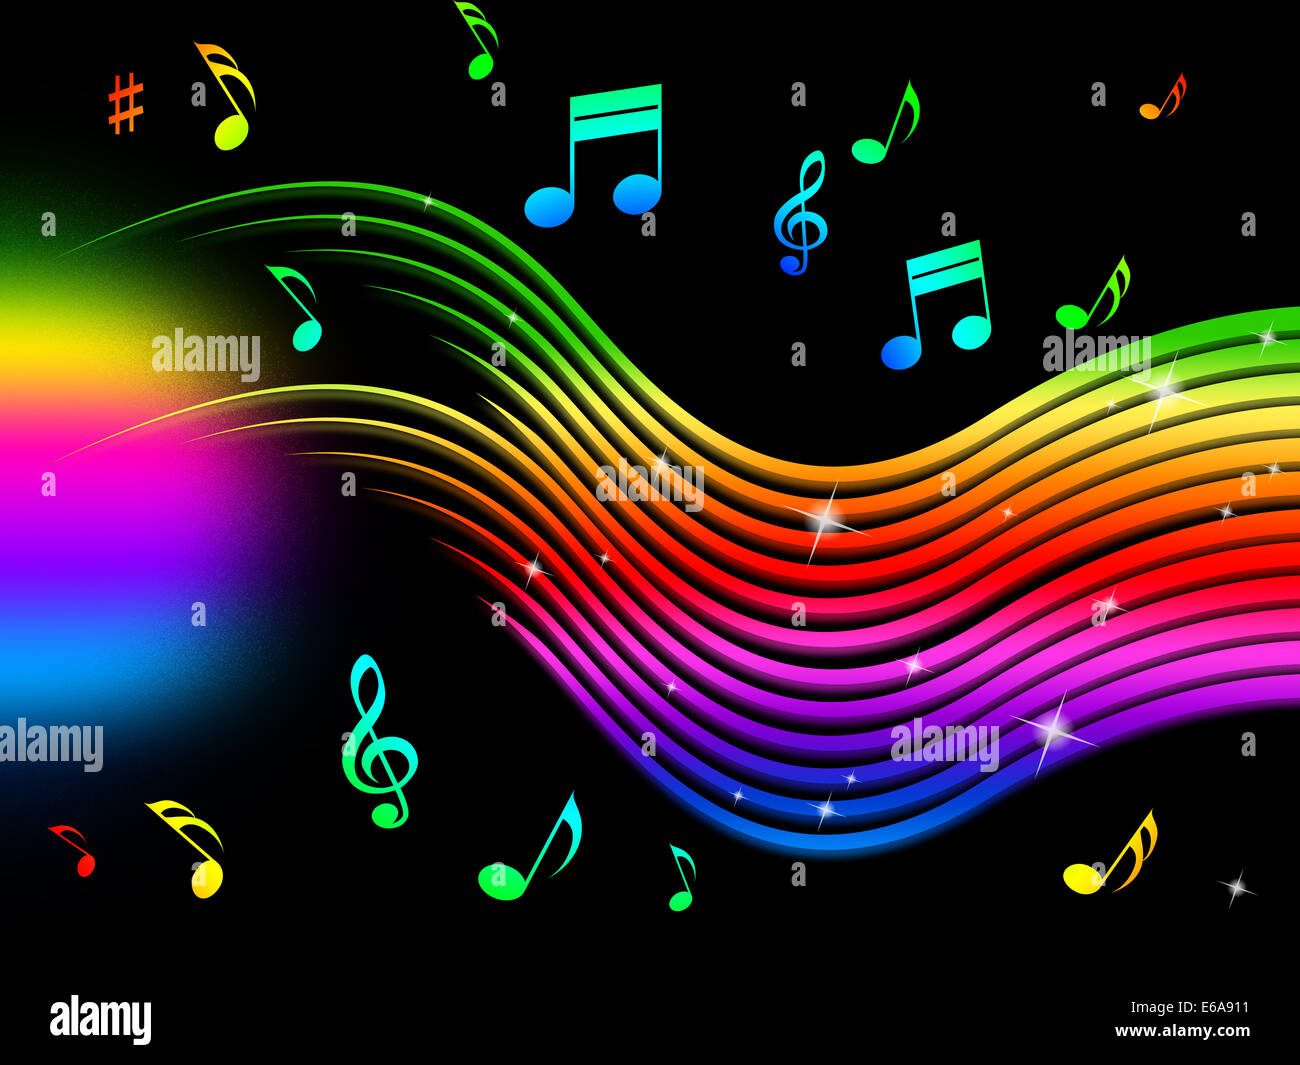 Rainbow Music Stock Images: Rainbow Music Background Meaning Colorful Lines And Melody